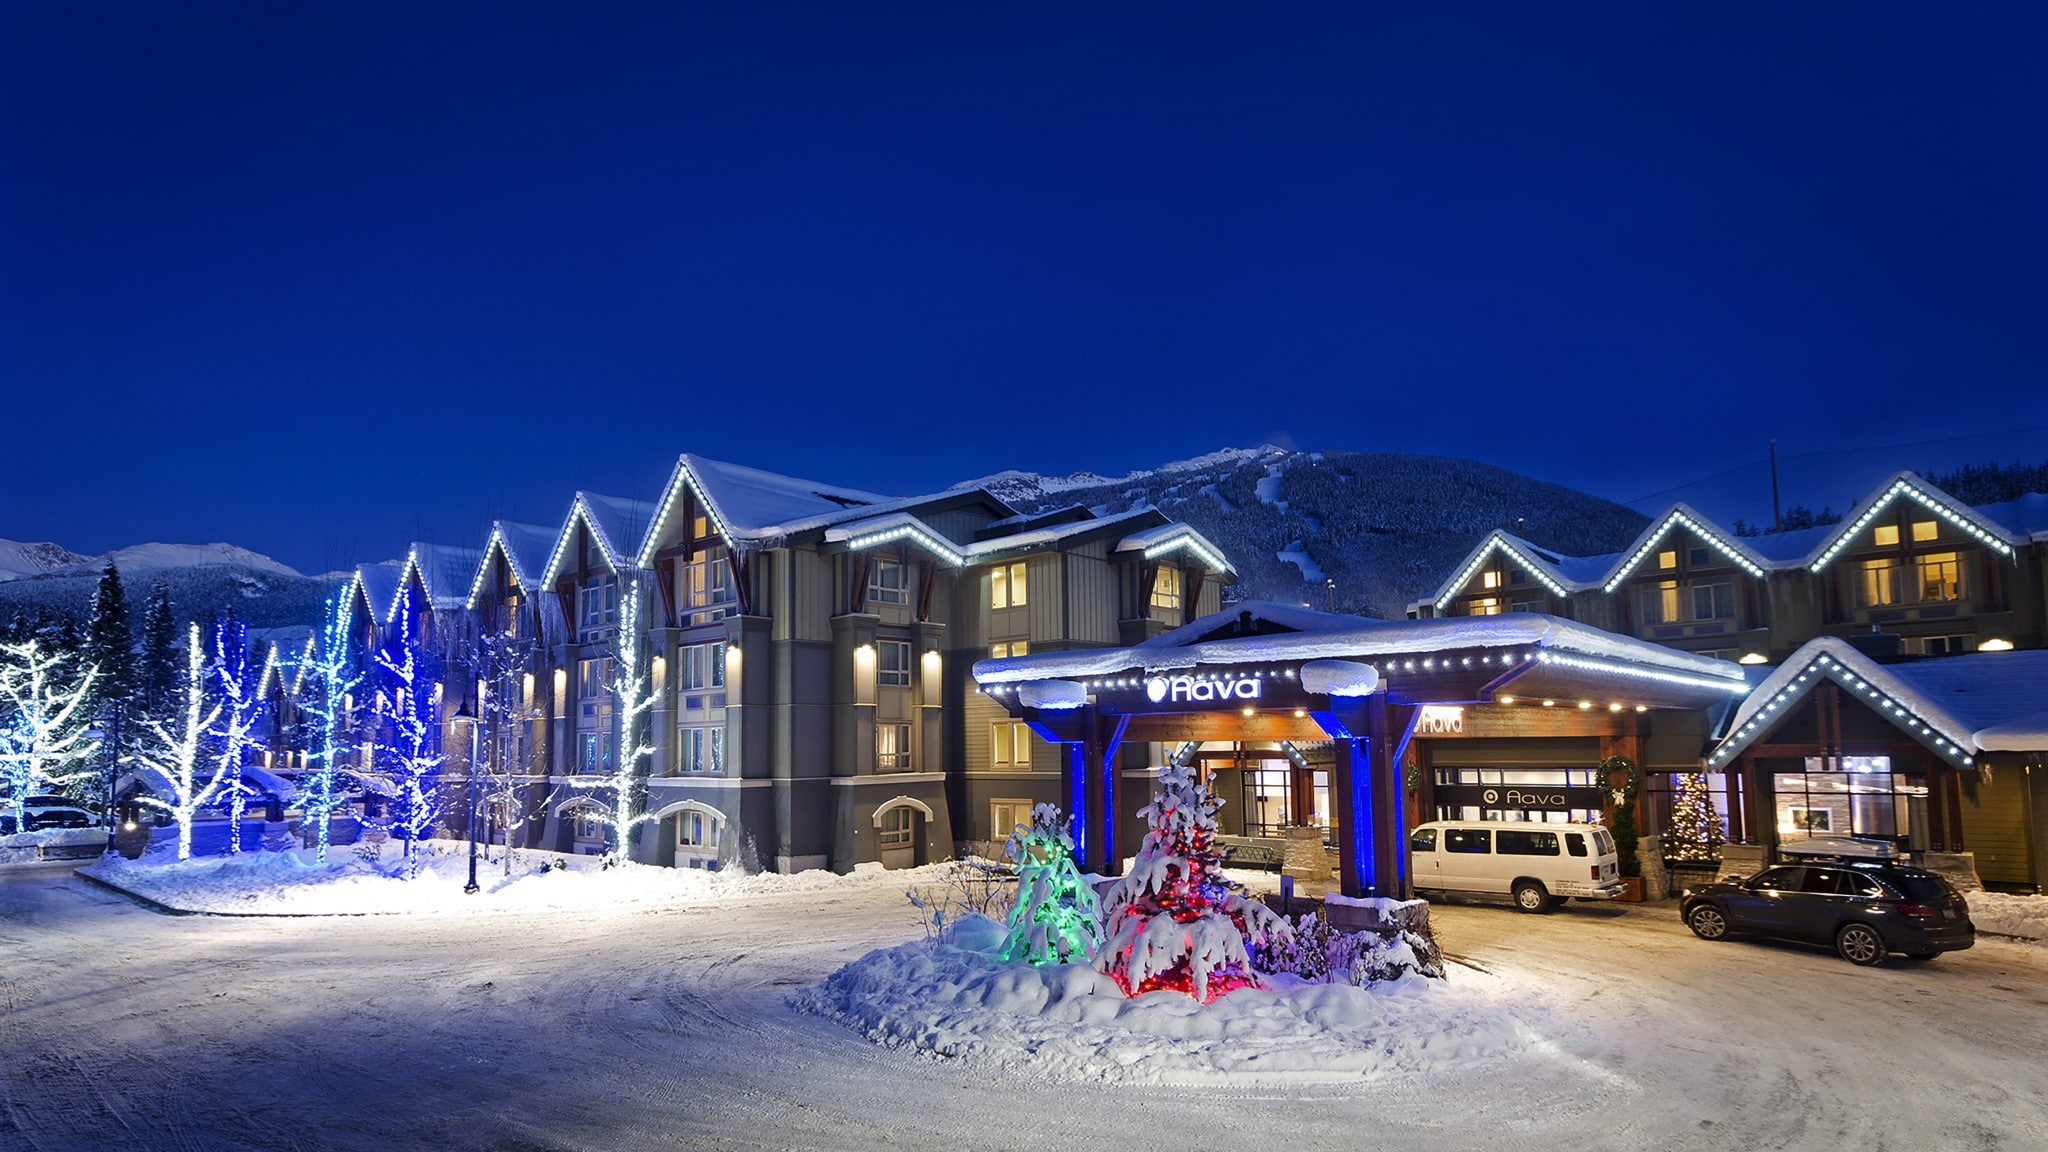 Glacier lodge by whistler accommodation resort villa